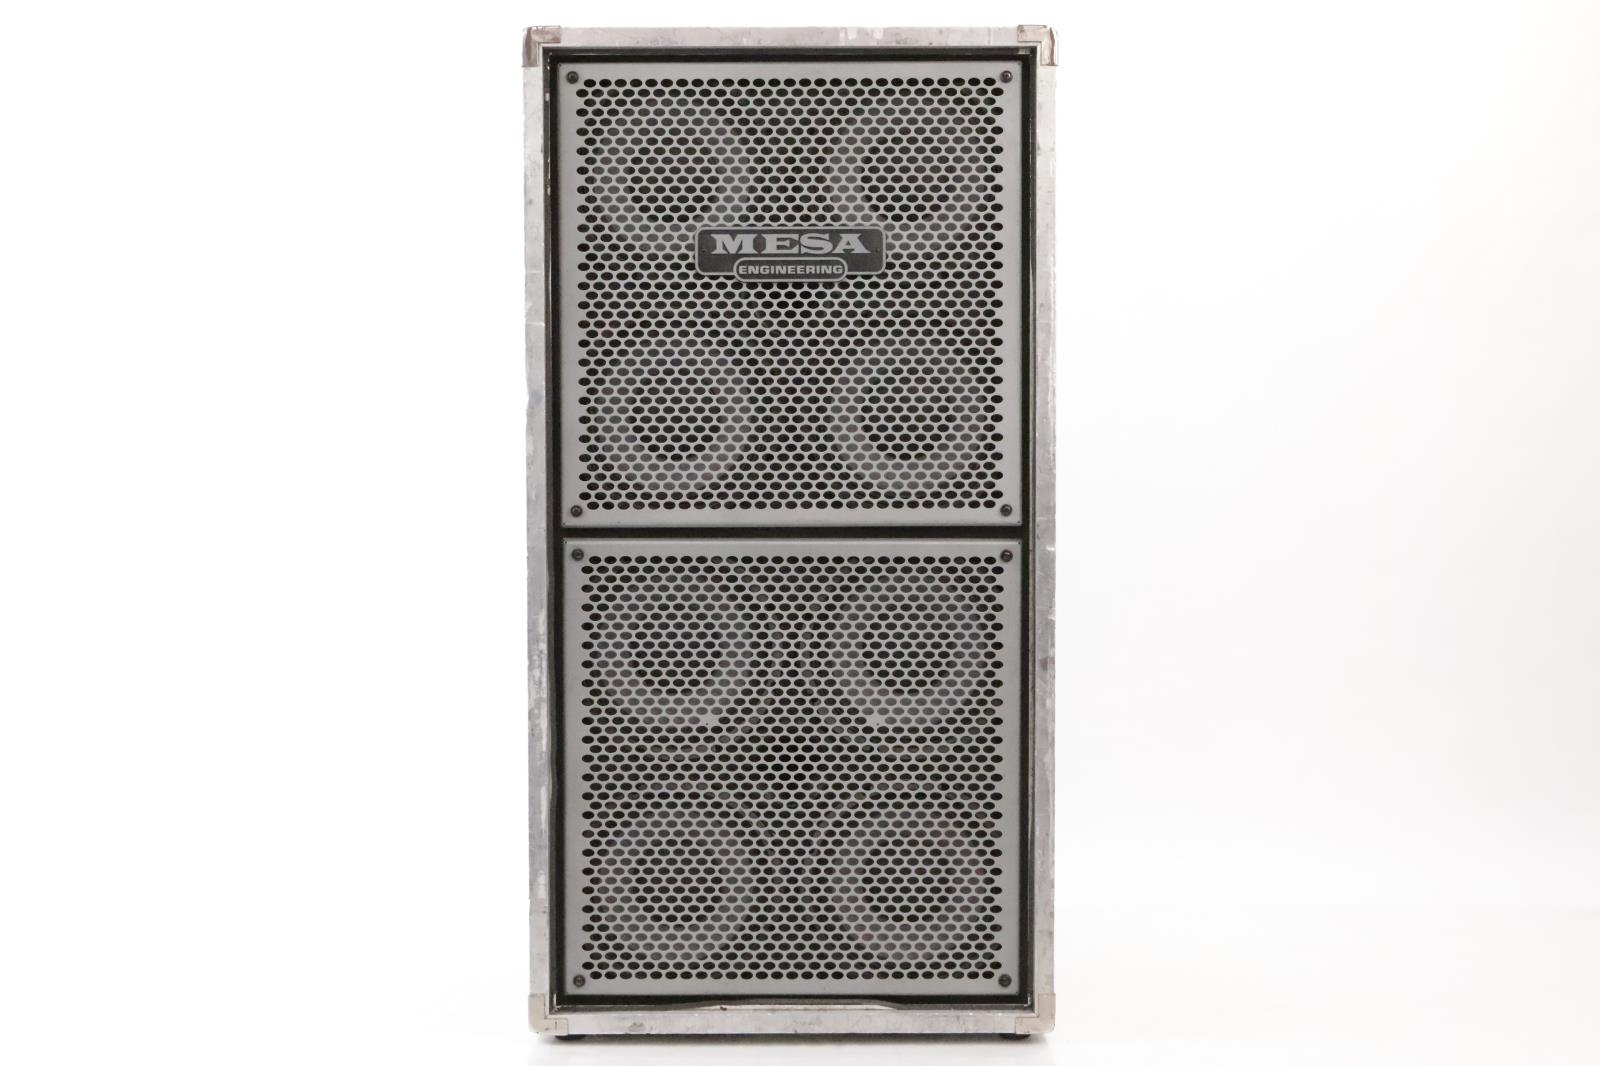 Mesa Boogie R810 Road Ready 8x10 1200w Bass Cab Owned by Satyricon #35075